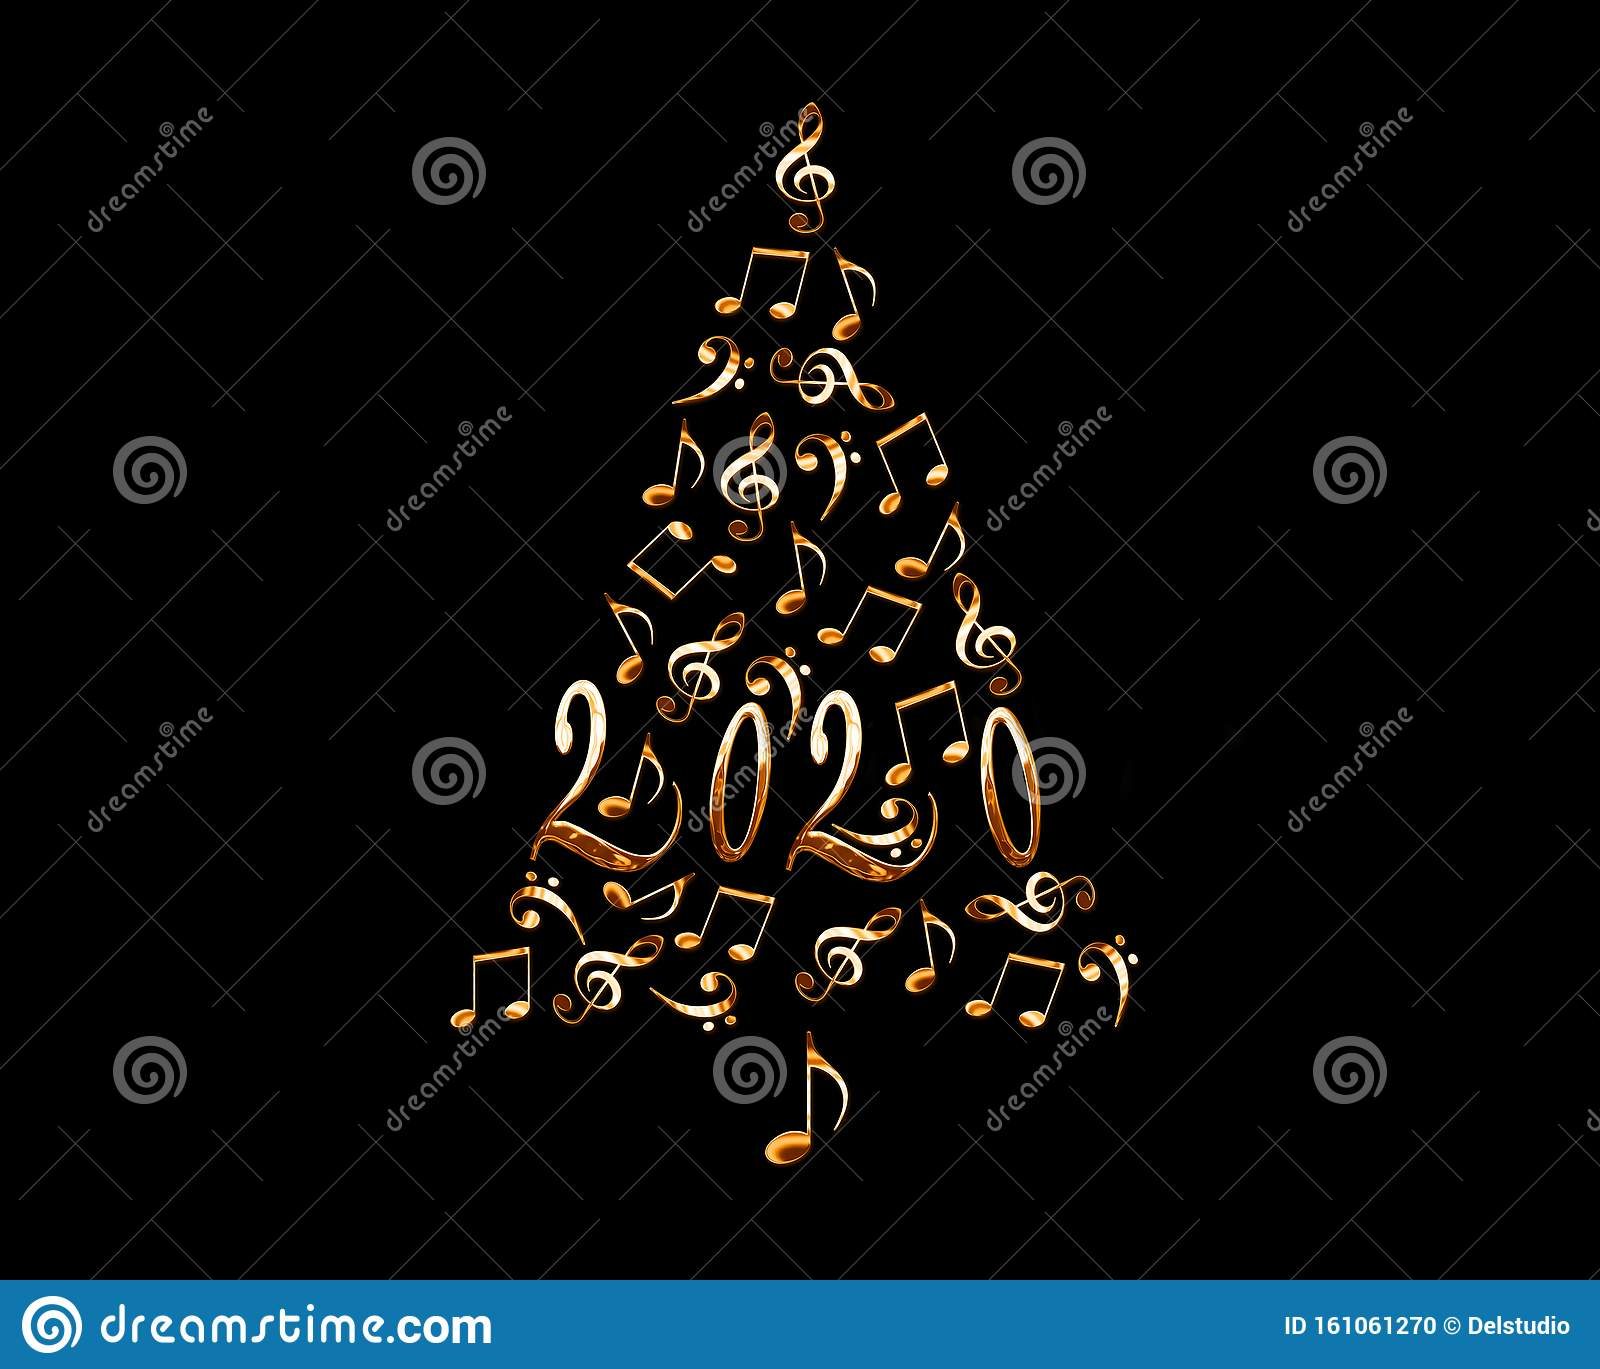 New Christmas Musicals 2020 2020 Christmas Tree With Silver Metal Musical Notes Isolated On